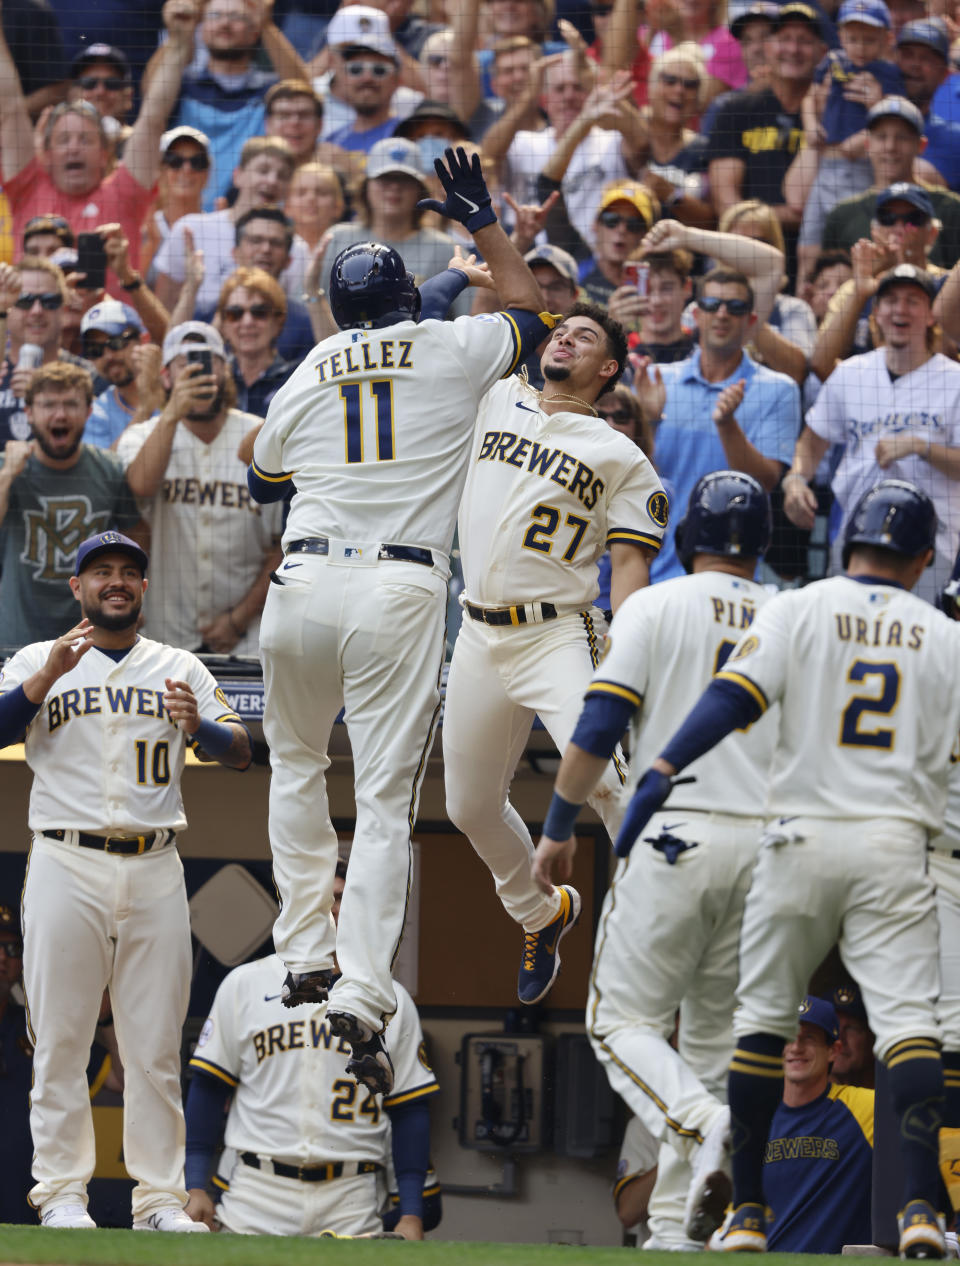 Milwaukee Brewers' Willy Adames (27) reacts with Rowdy Tellez (11) after his three-RBI pinch hit home run against the Pittsburgh Pirates during the seventh inning of a baseball game Wednesday, Aug. 4, 2021, in Milwaukee. (AP Photo/Jeffrey Phelps)